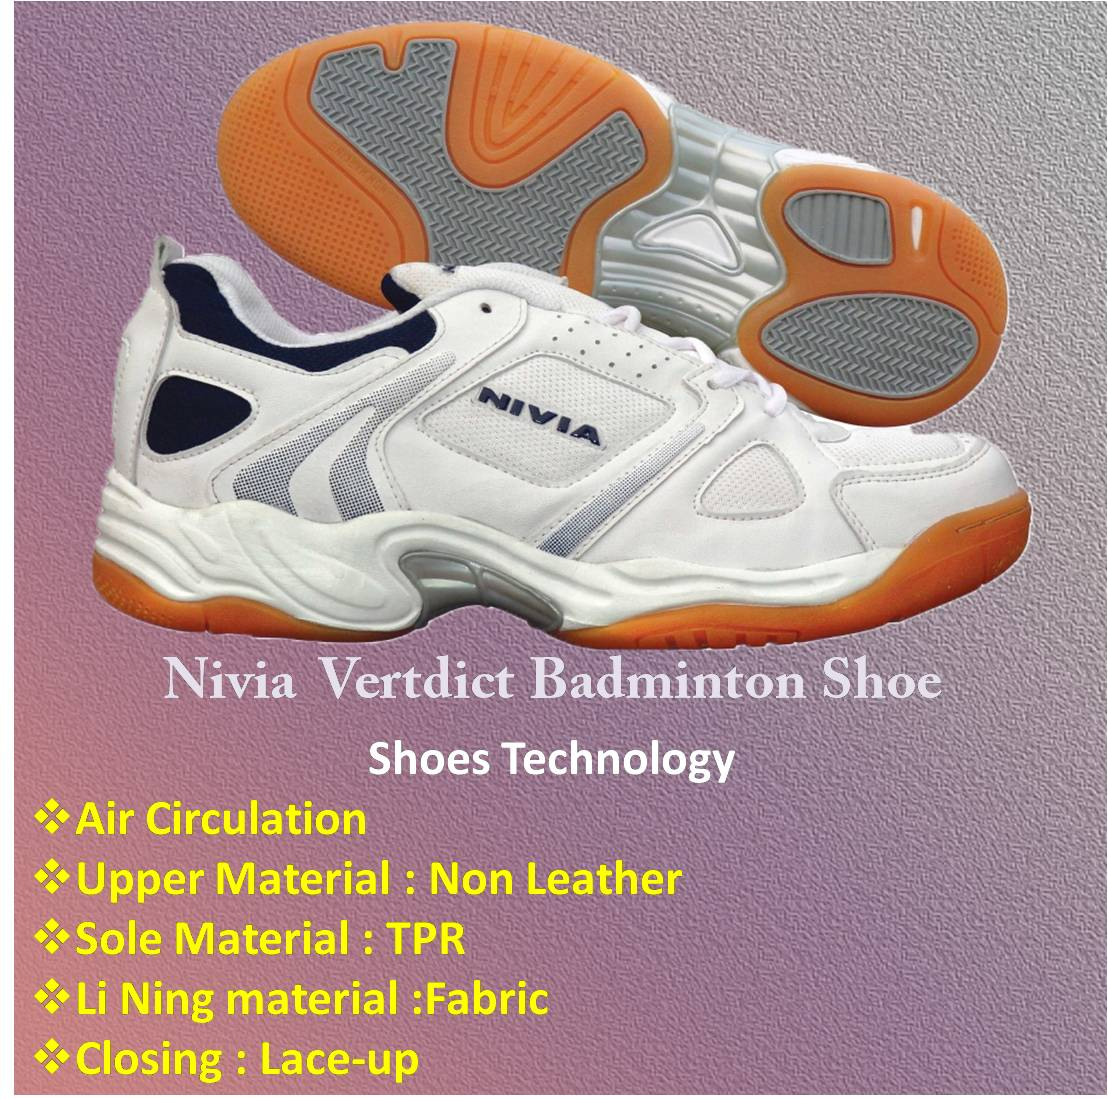 Nivia Verdict Badminton Shoes